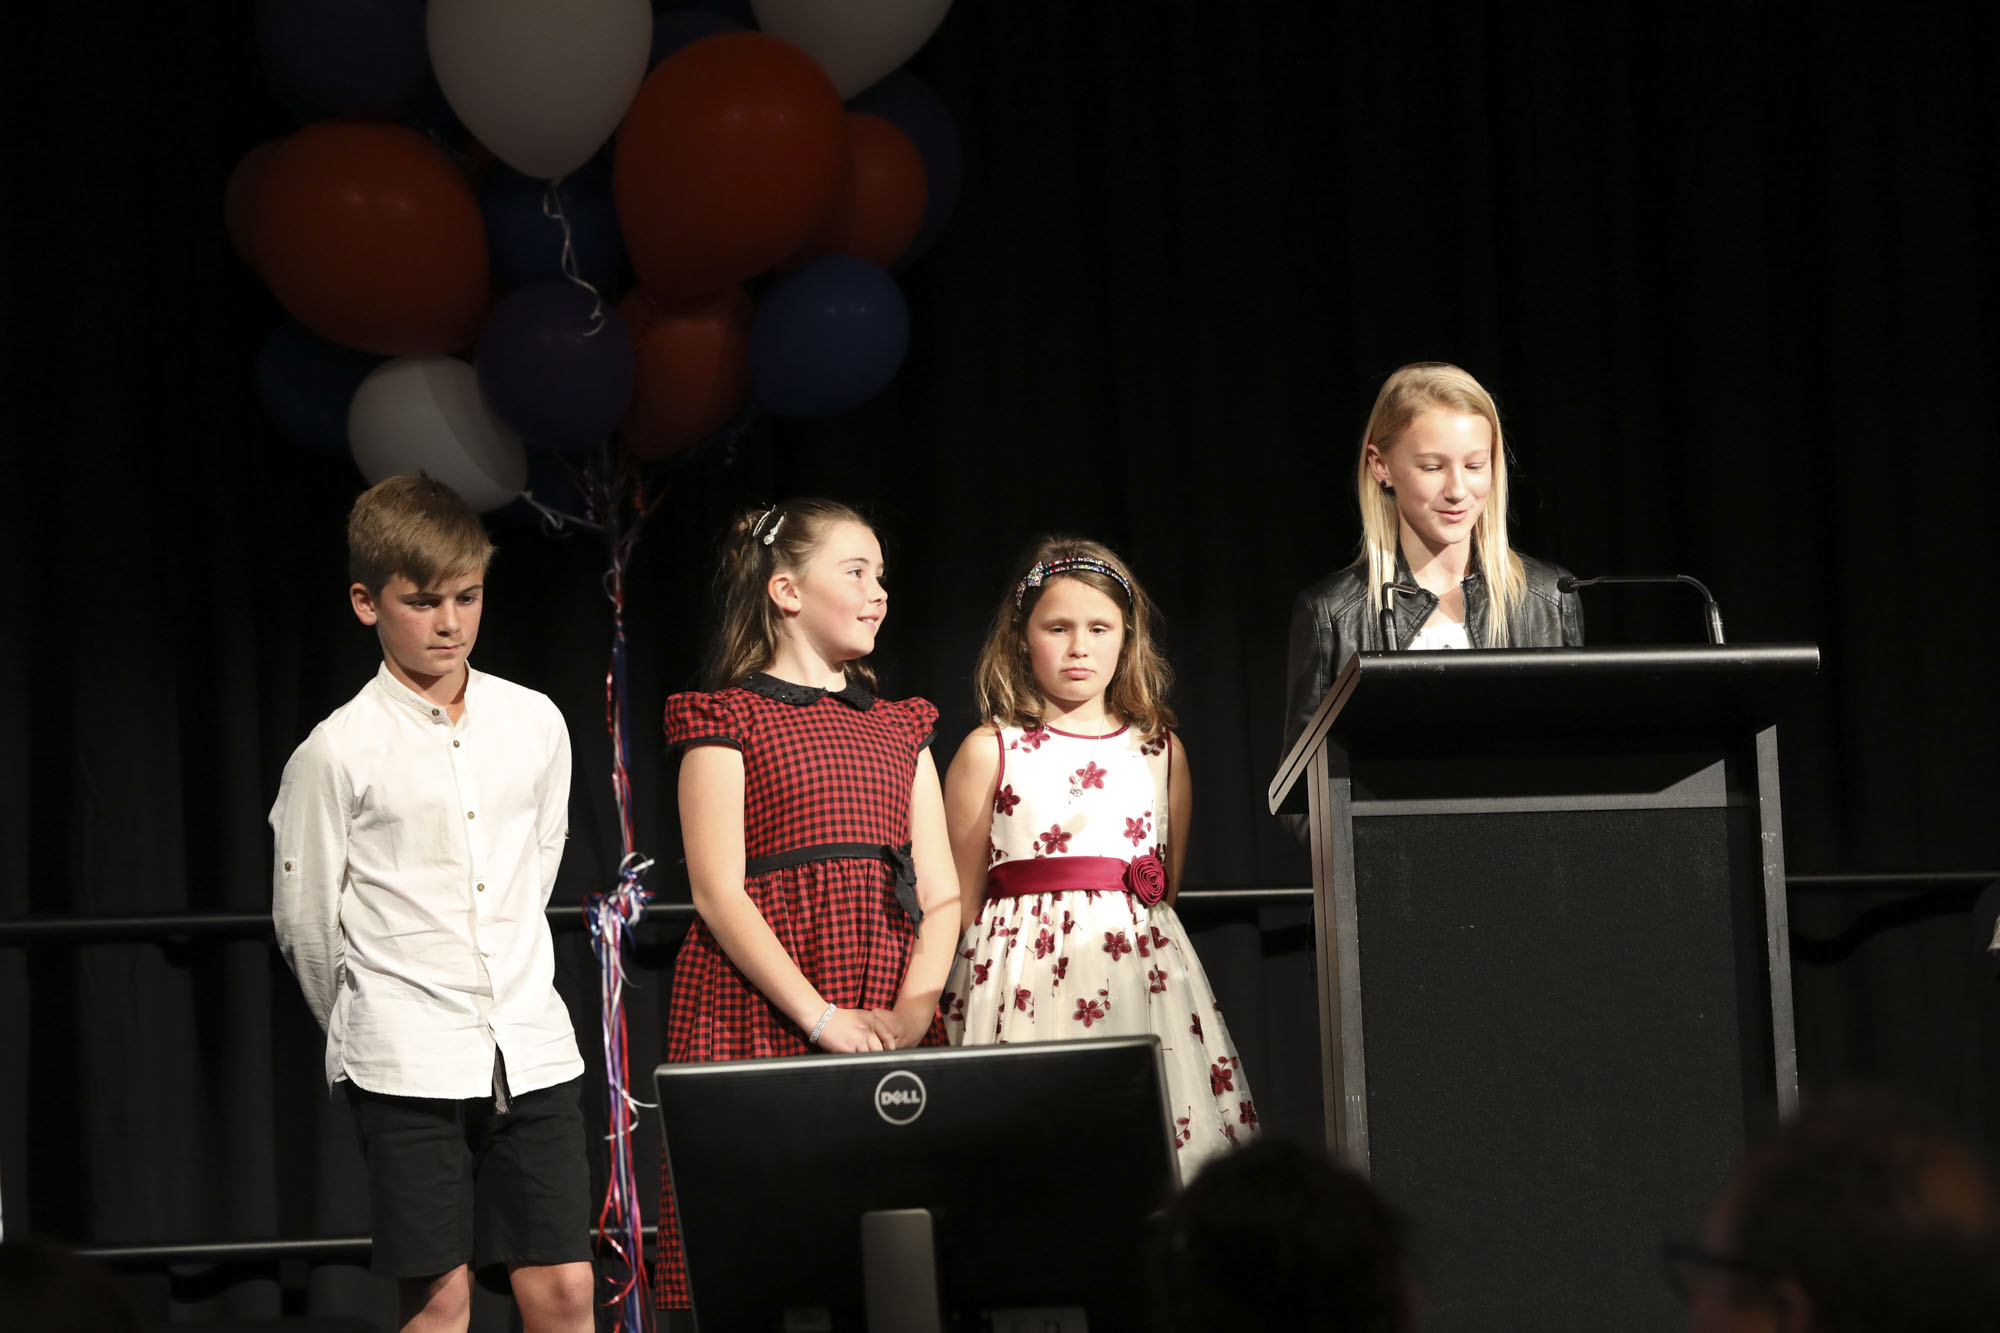 Mundaring PS students: Oceana, Blake, Elise, and Karla, on participating in Digital Promise Global (an HP & Microsoft program). A global network of 60+ Learning Studios, gave students the opportunity to experiment using tech designed for collaboration and creation.